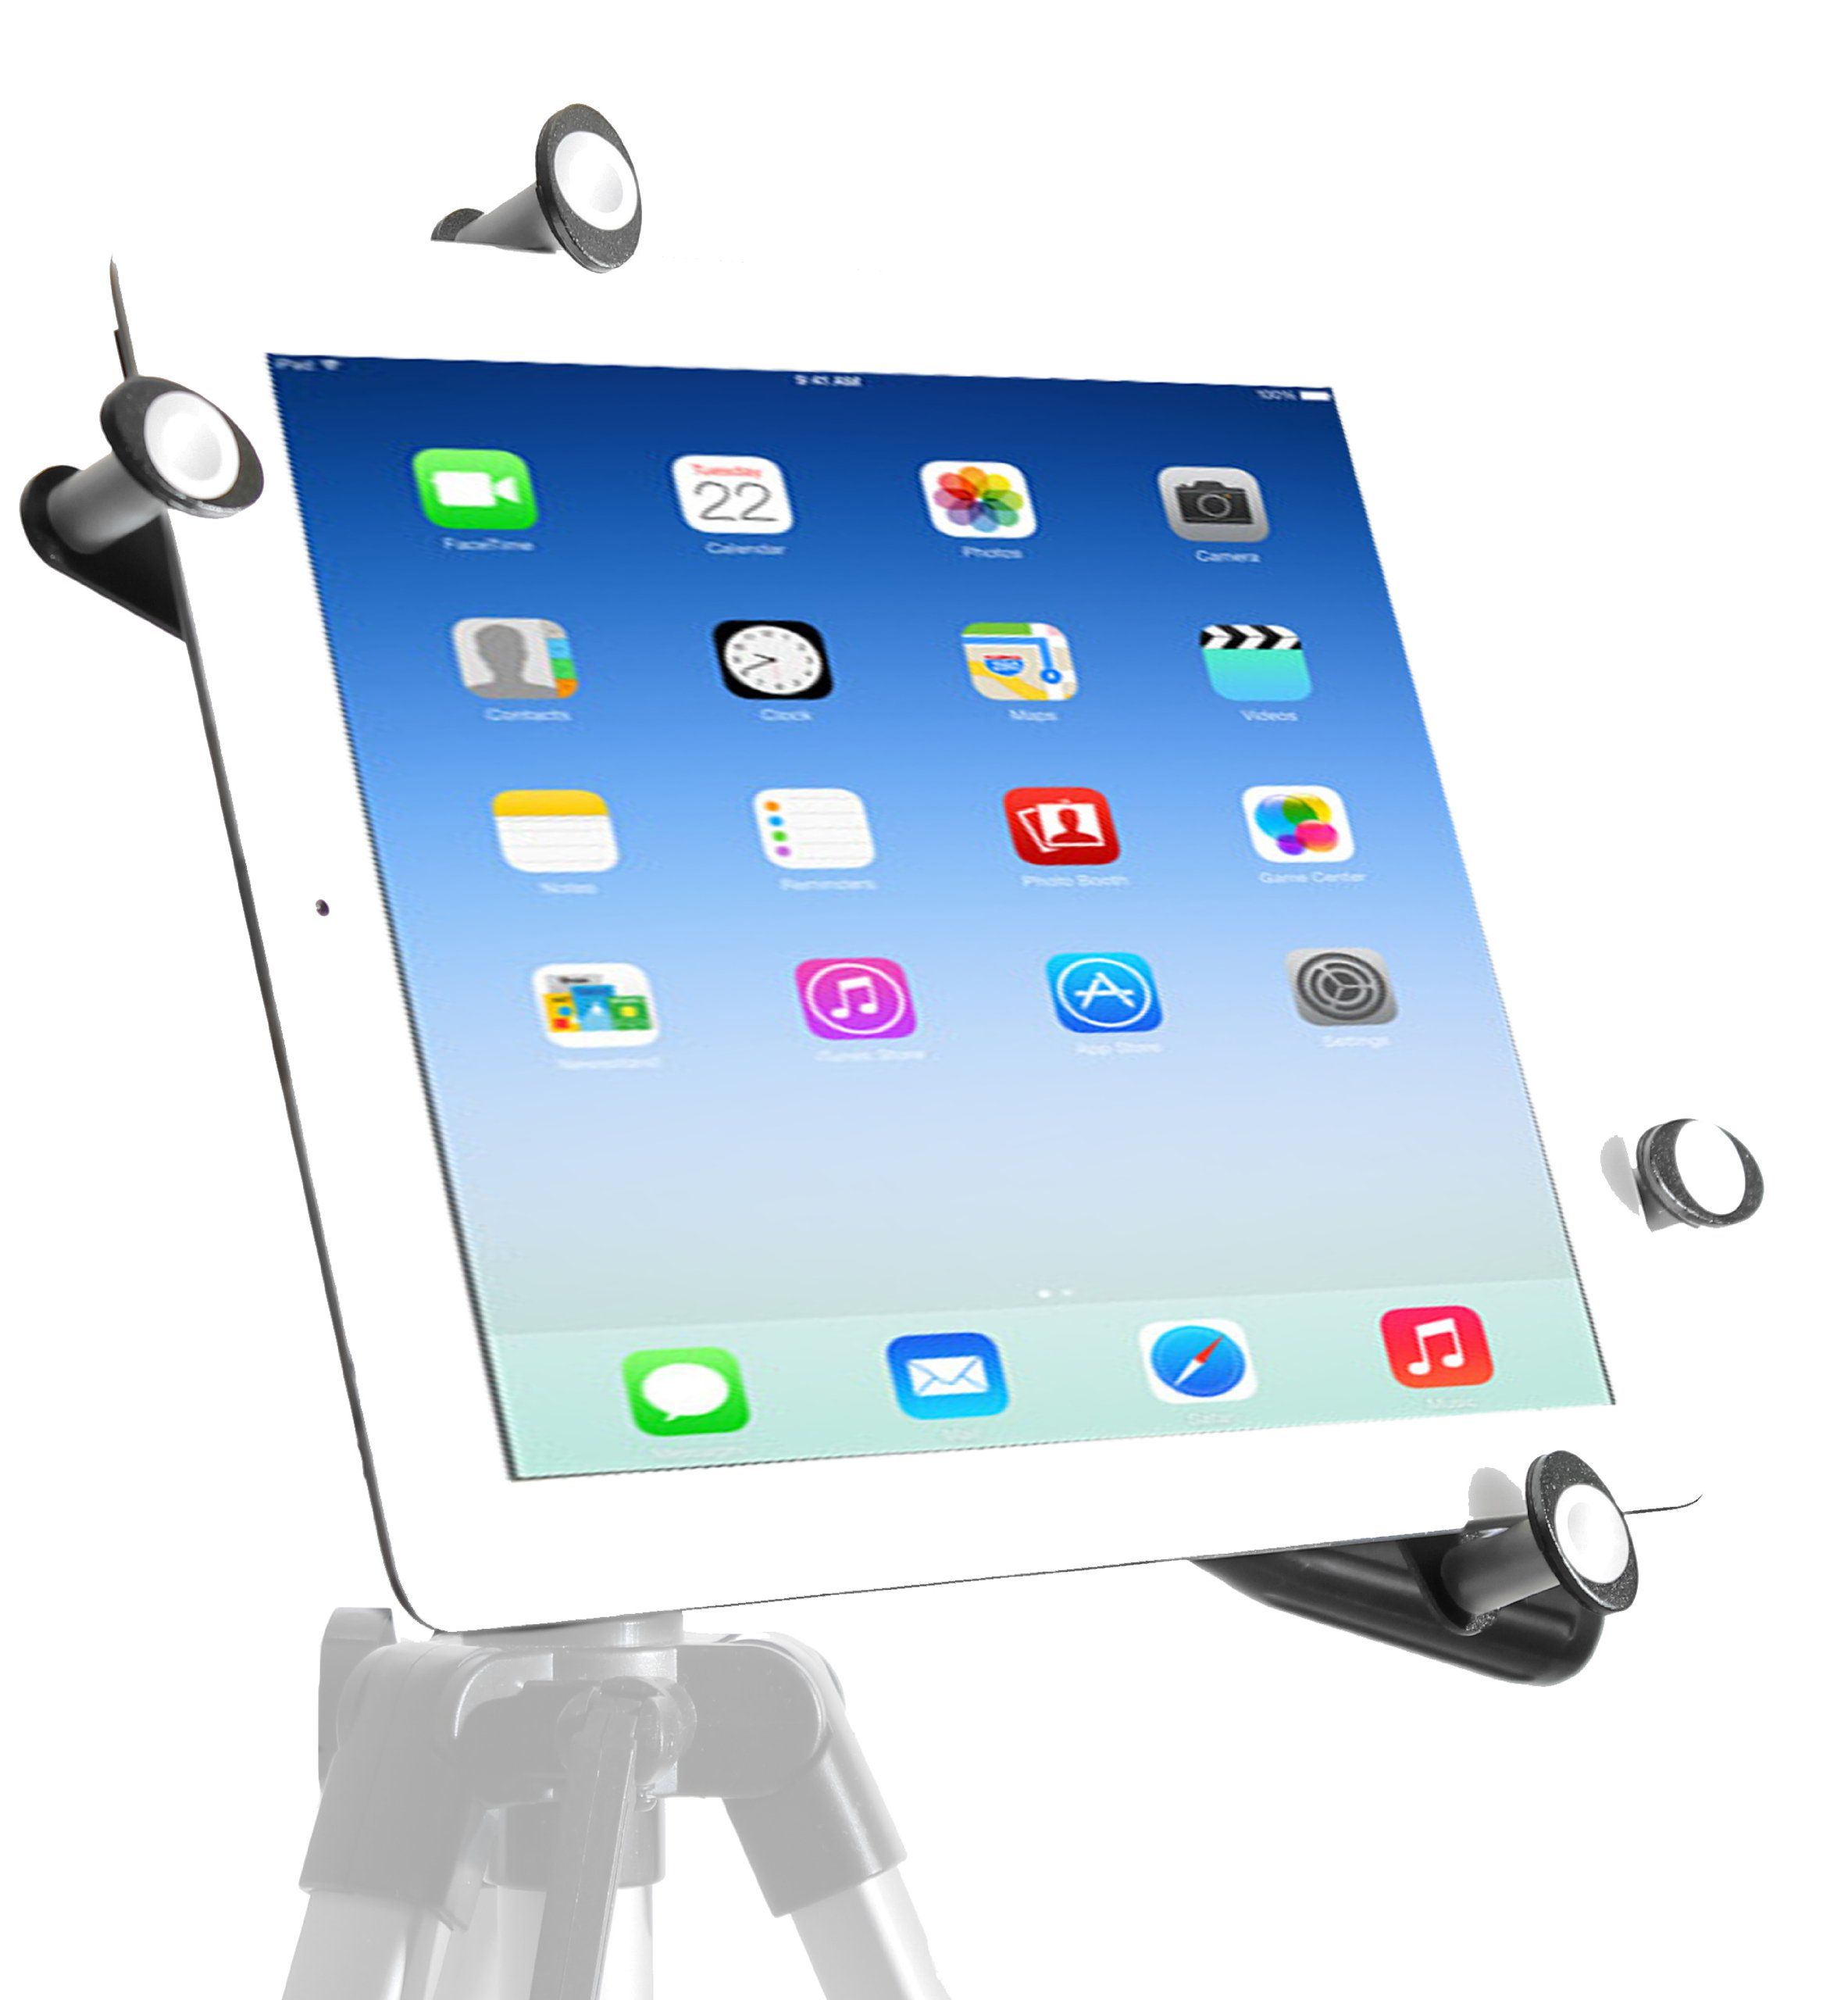 iShot Pro G7 Pro iPad Tripod Mount Adapter Holder - Works with Most Cases & Sleeves Even Thick Otter Box Cases - Securely Mount any 7-11 inch iPad